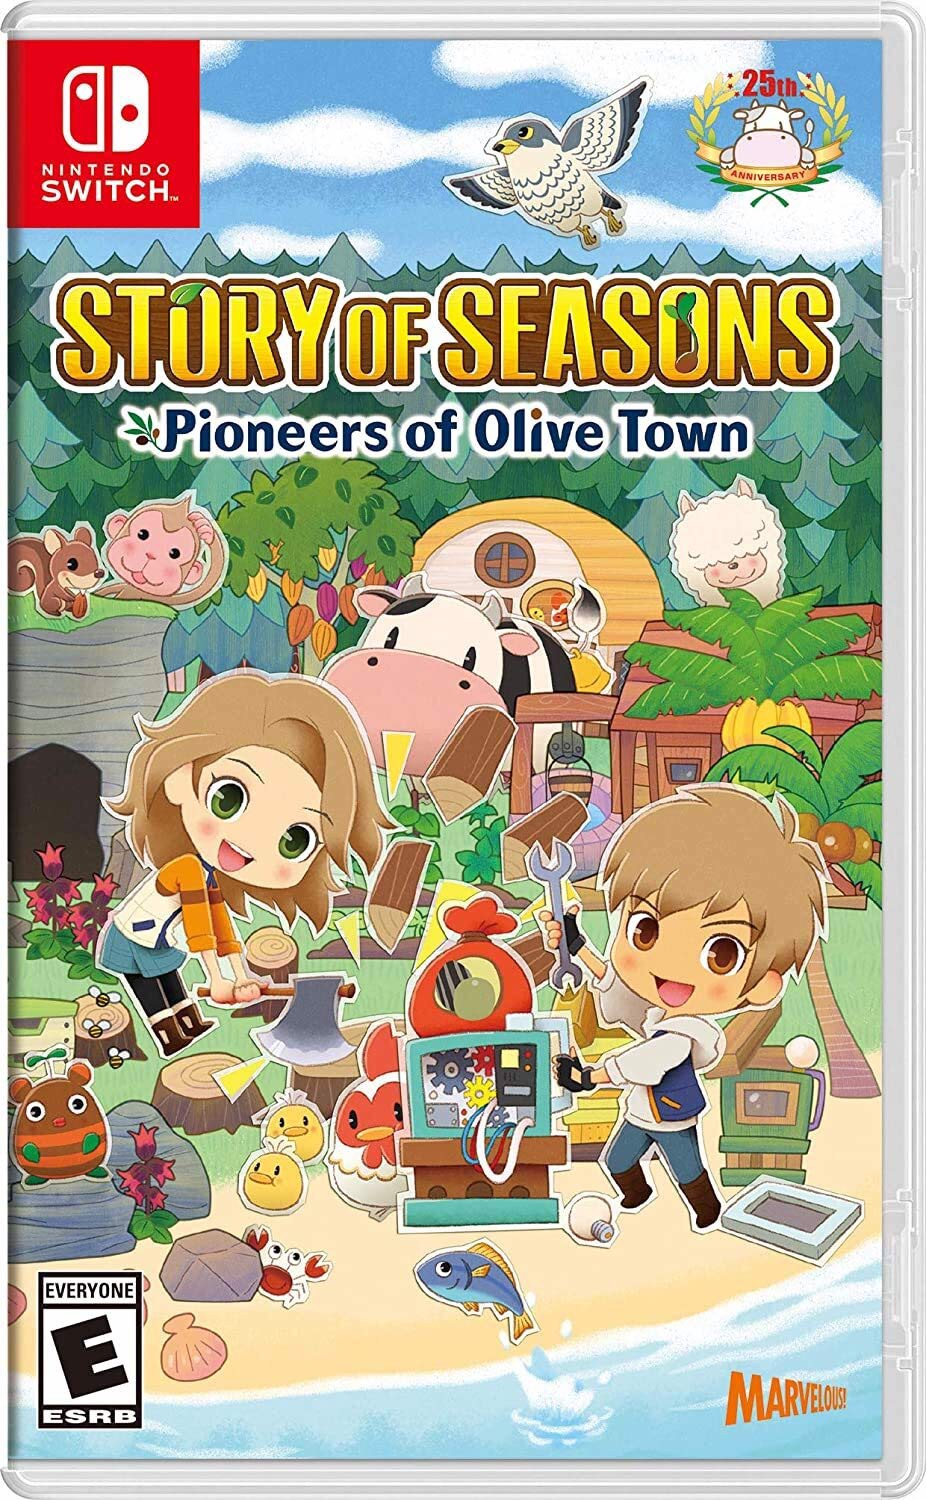 305 - Story of Seasons: Pioneers of Olive Town - Premium Edition